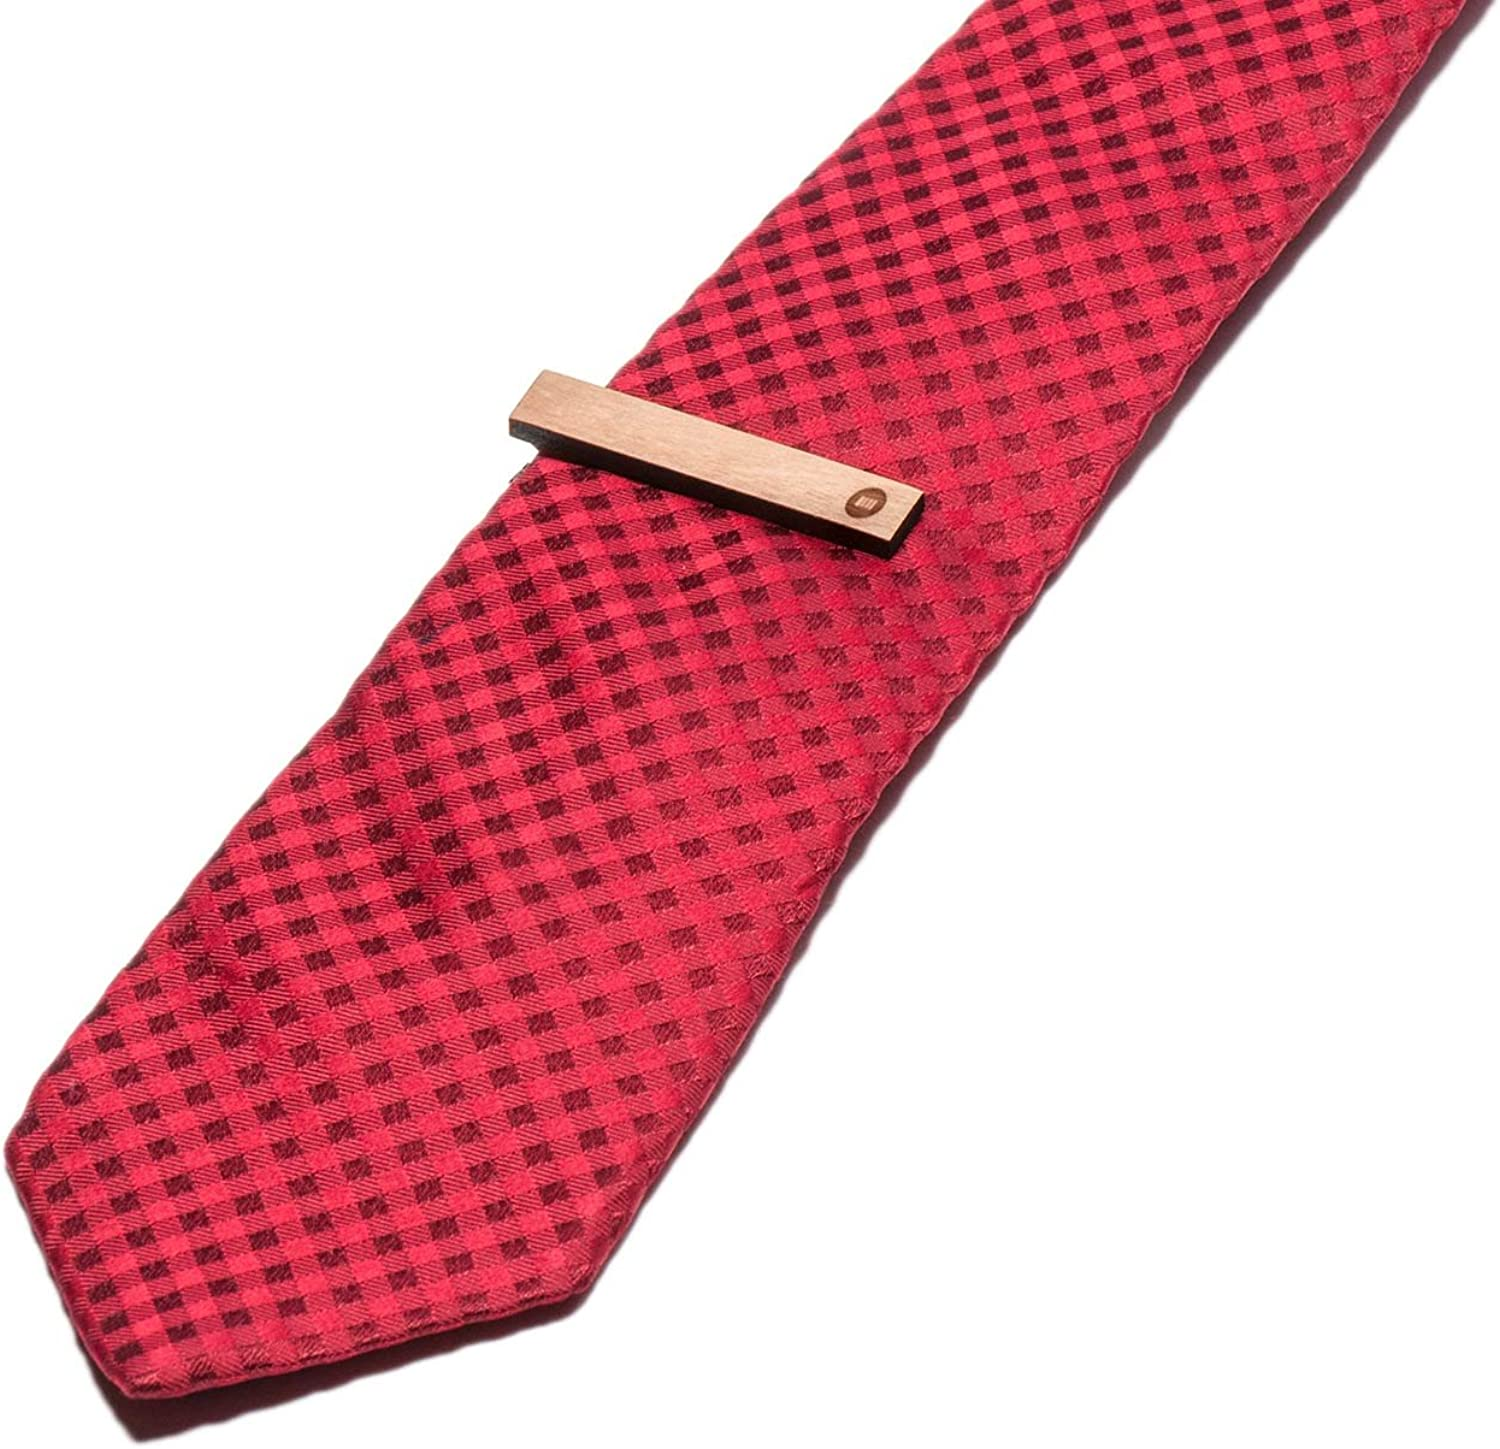 Wooden Accessories Company Wooden Tie Clips with Laser Engraved Merchandise Design Cherry Wood Tie Bar Engraved in The USA